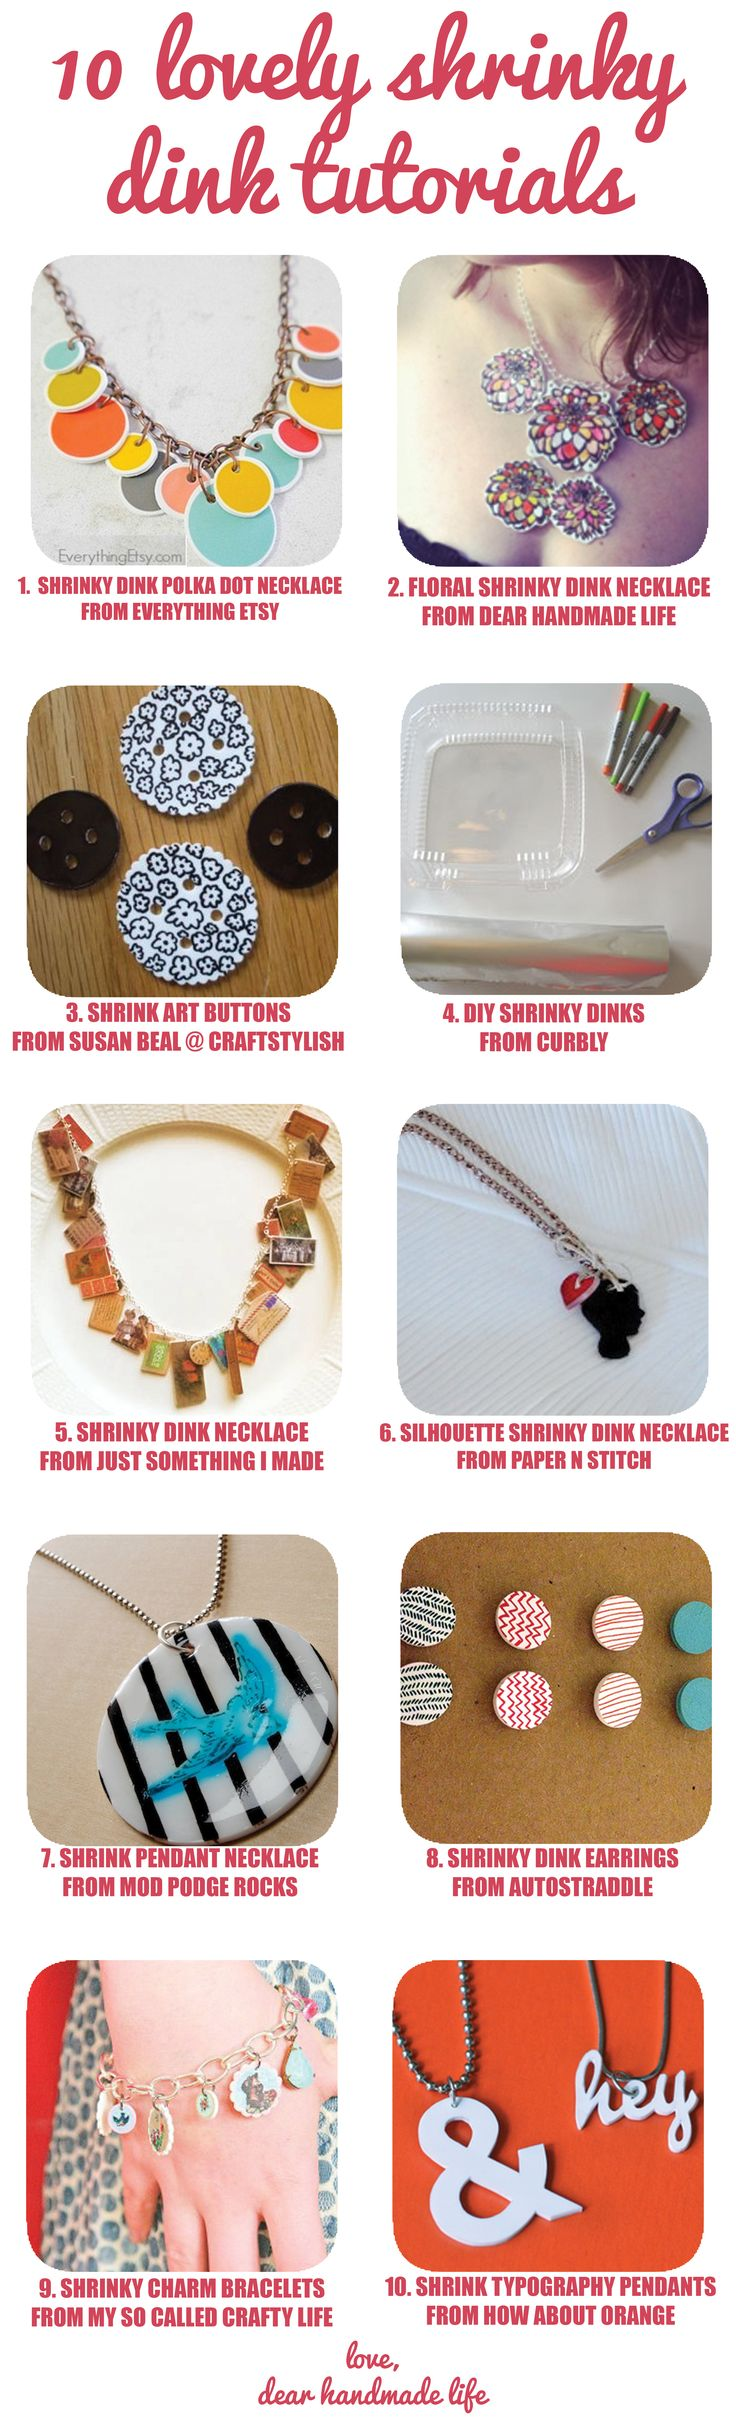 shrinky-dink-jewelry-tutorial-craft-diy-indie-necklace-button-earring-pendant-ten-craft-kids